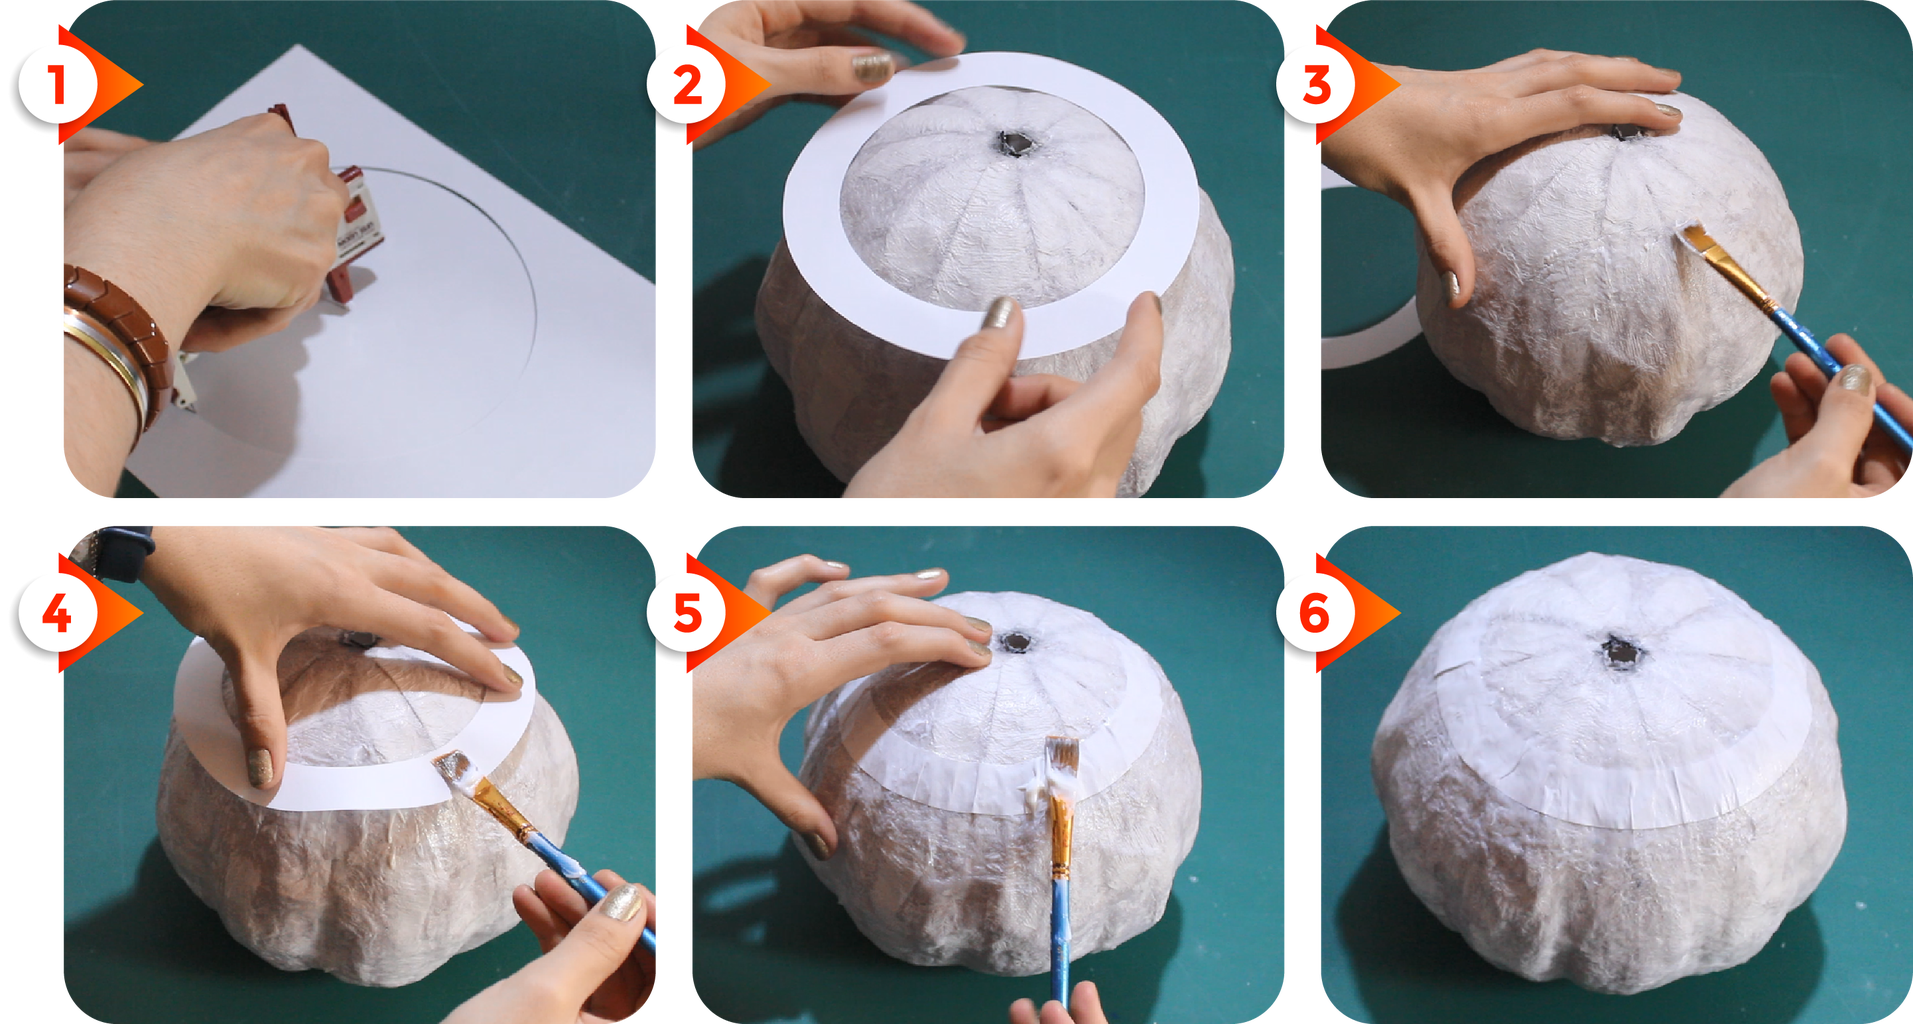 Guide Lines for the Lid